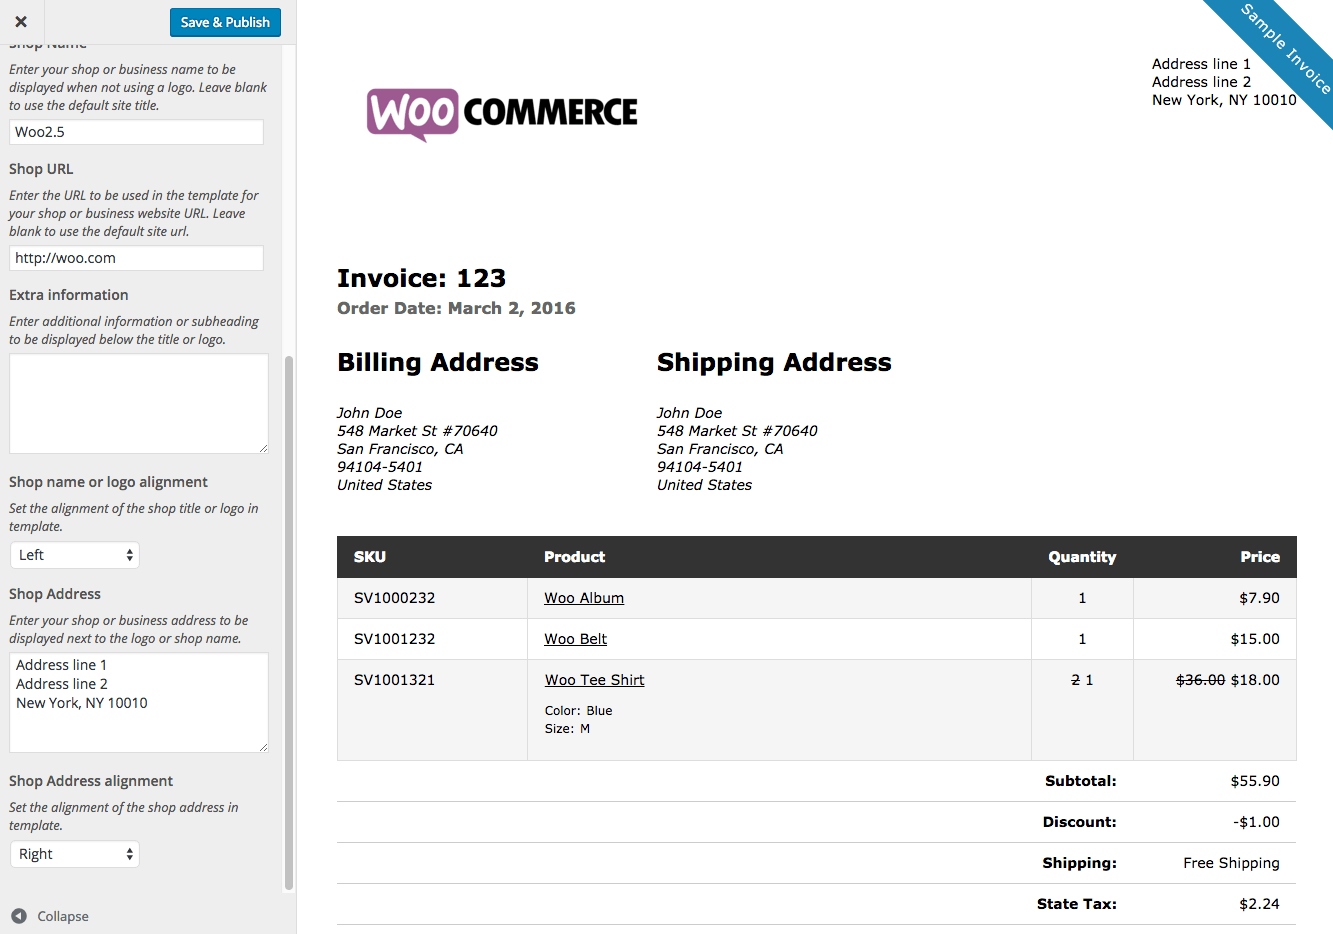 Sandiegolocksmithsus  Surprising Woocommerce Print Invoices Amp Packing Lists  Woocommerce Docs With Luxury Woocommerce Print Invoices  Packing Lists Customizer With Extraordinary Cost Of Certified Mail Return Receipt Also Nih Receipt Dates In Addition Kohls Return Policy No Receipt And Used Car Receipt As Well As Permanent Resident Card Receipt Number Additionally Petty Cash Receipt Template From Docswoocommercecom With Sandiegolocksmithsus  Luxury Woocommerce Print Invoices Amp Packing Lists  Woocommerce Docs With Extraordinary Woocommerce Print Invoices  Packing Lists Customizer And Surprising Cost Of Certified Mail Return Receipt Also Nih Receipt Dates In Addition Kohls Return Policy No Receipt From Docswoocommercecom